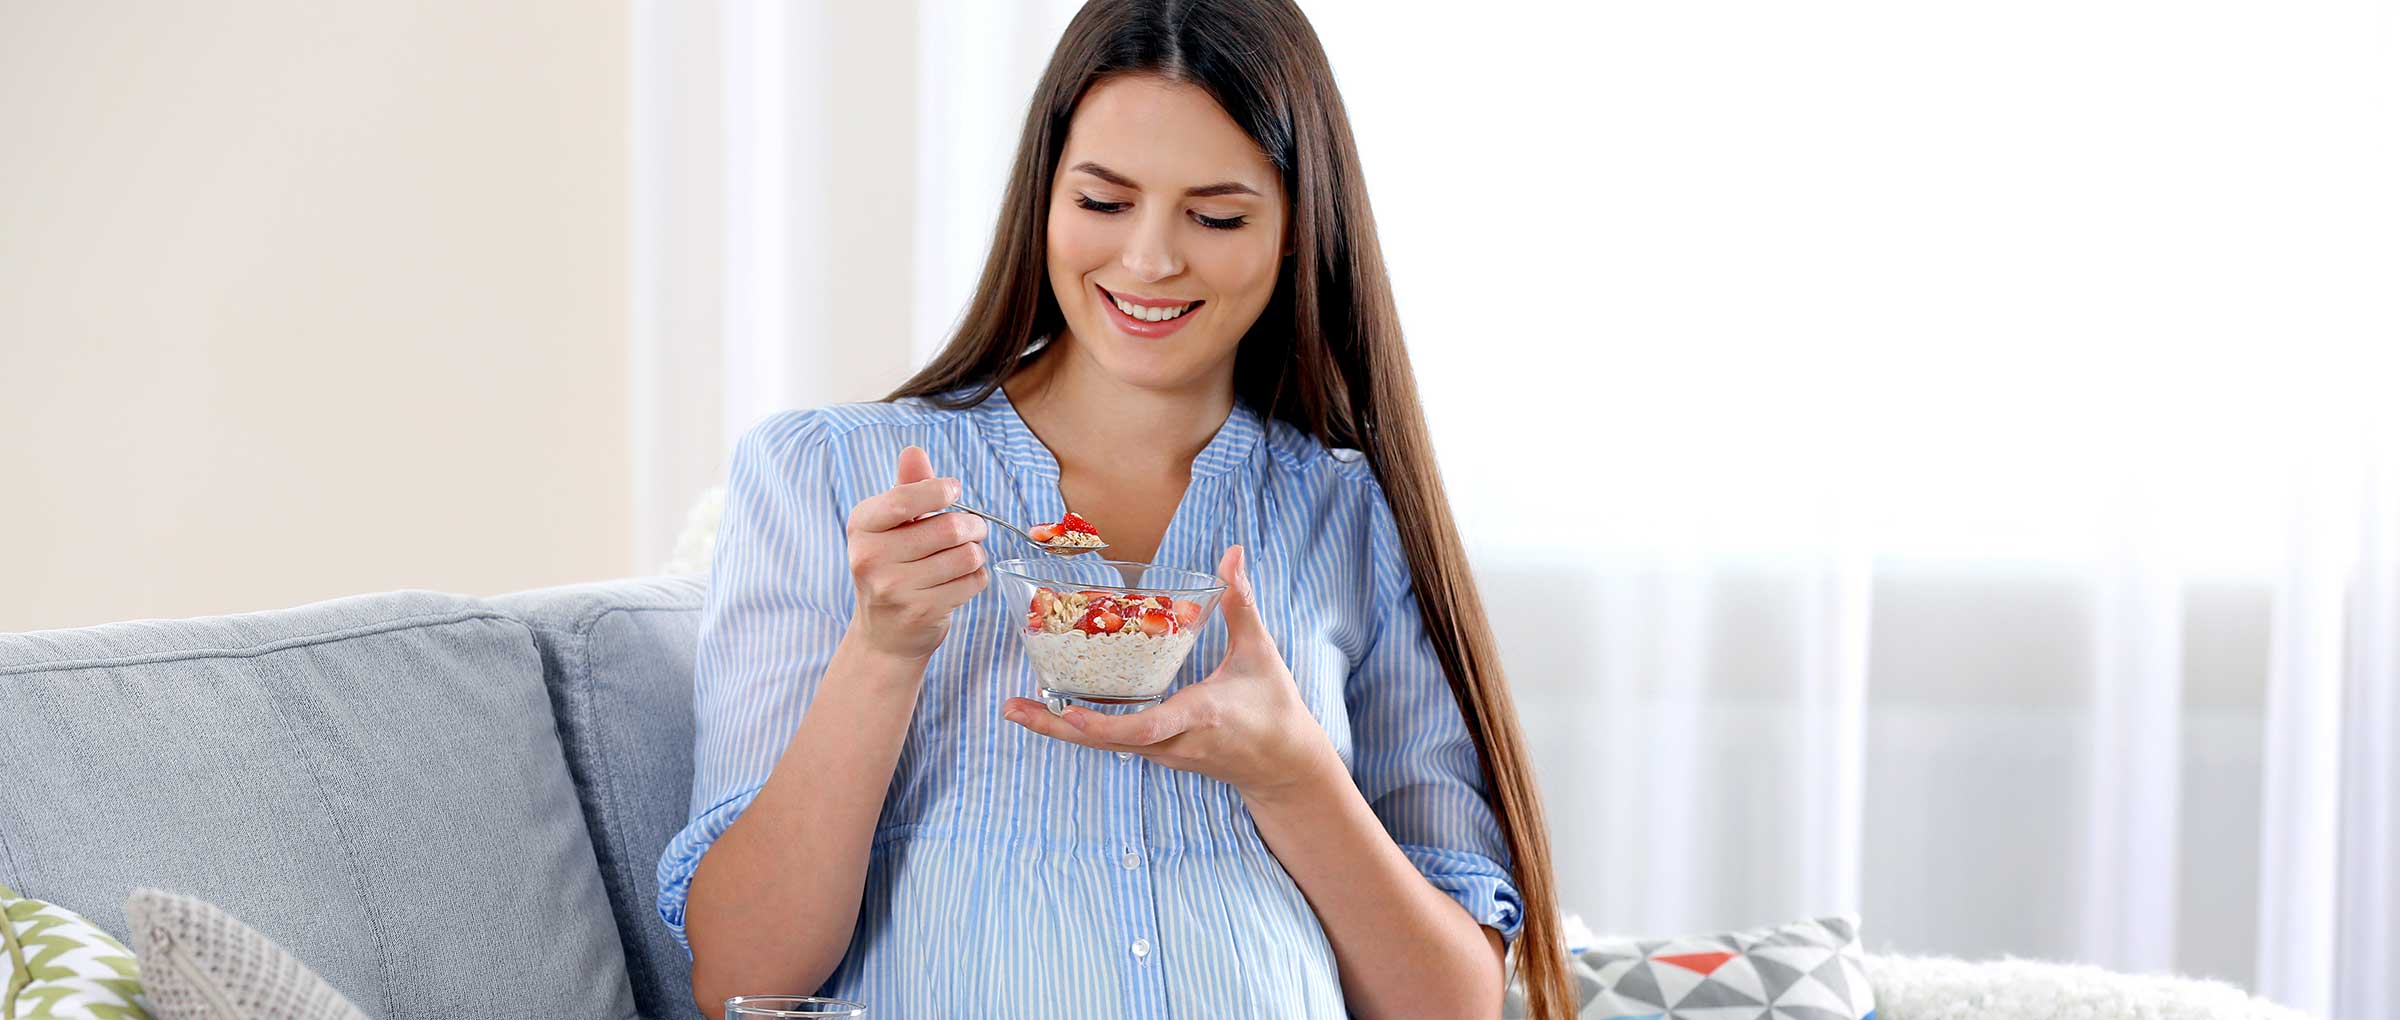 Recommended foods during pregnancy